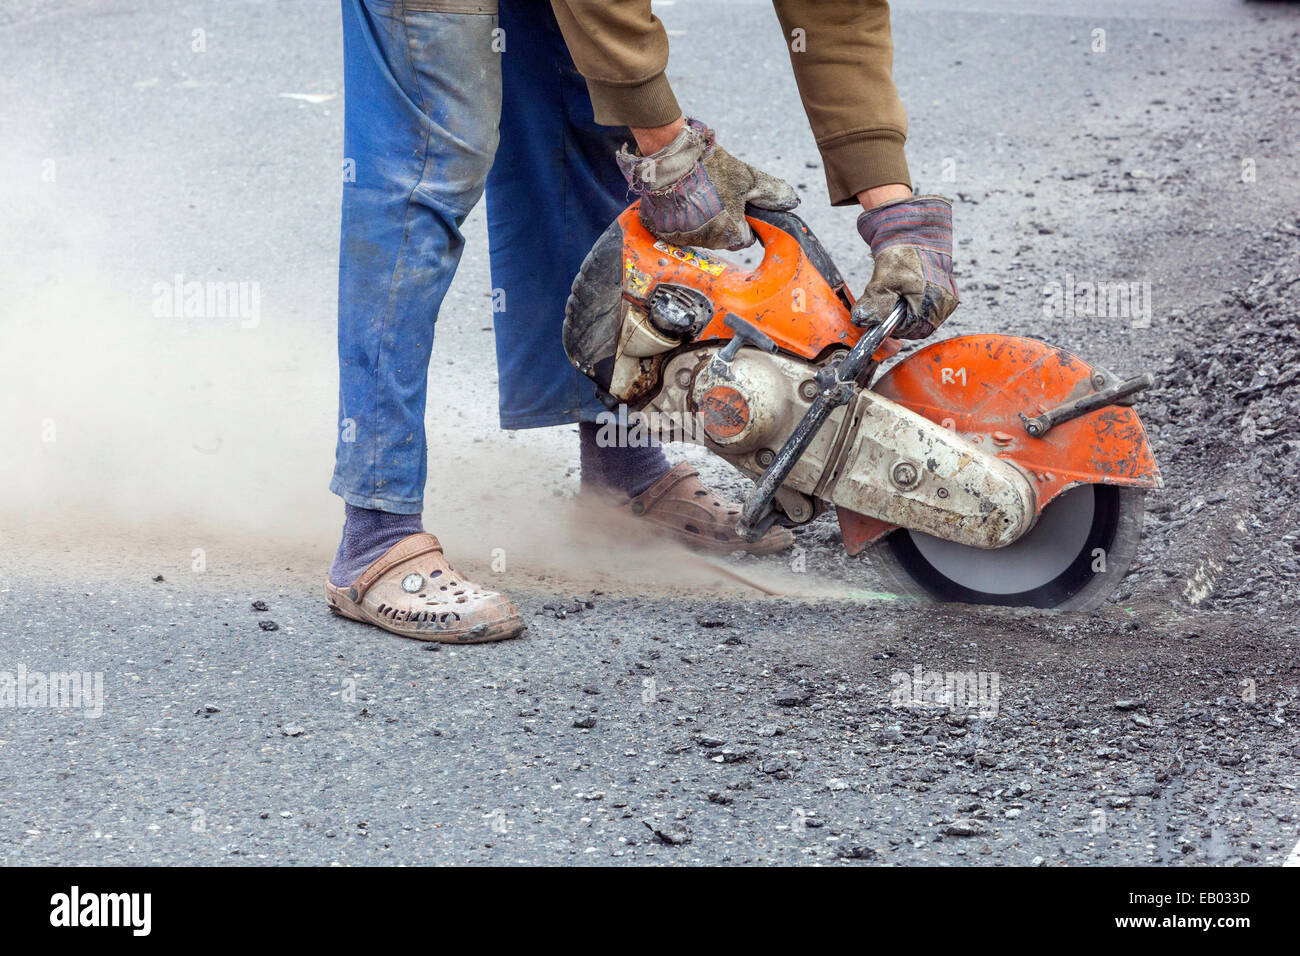 A man works cut asphalt road with a diamond cutter, No protective work gear, Czech Republic - Stock Image